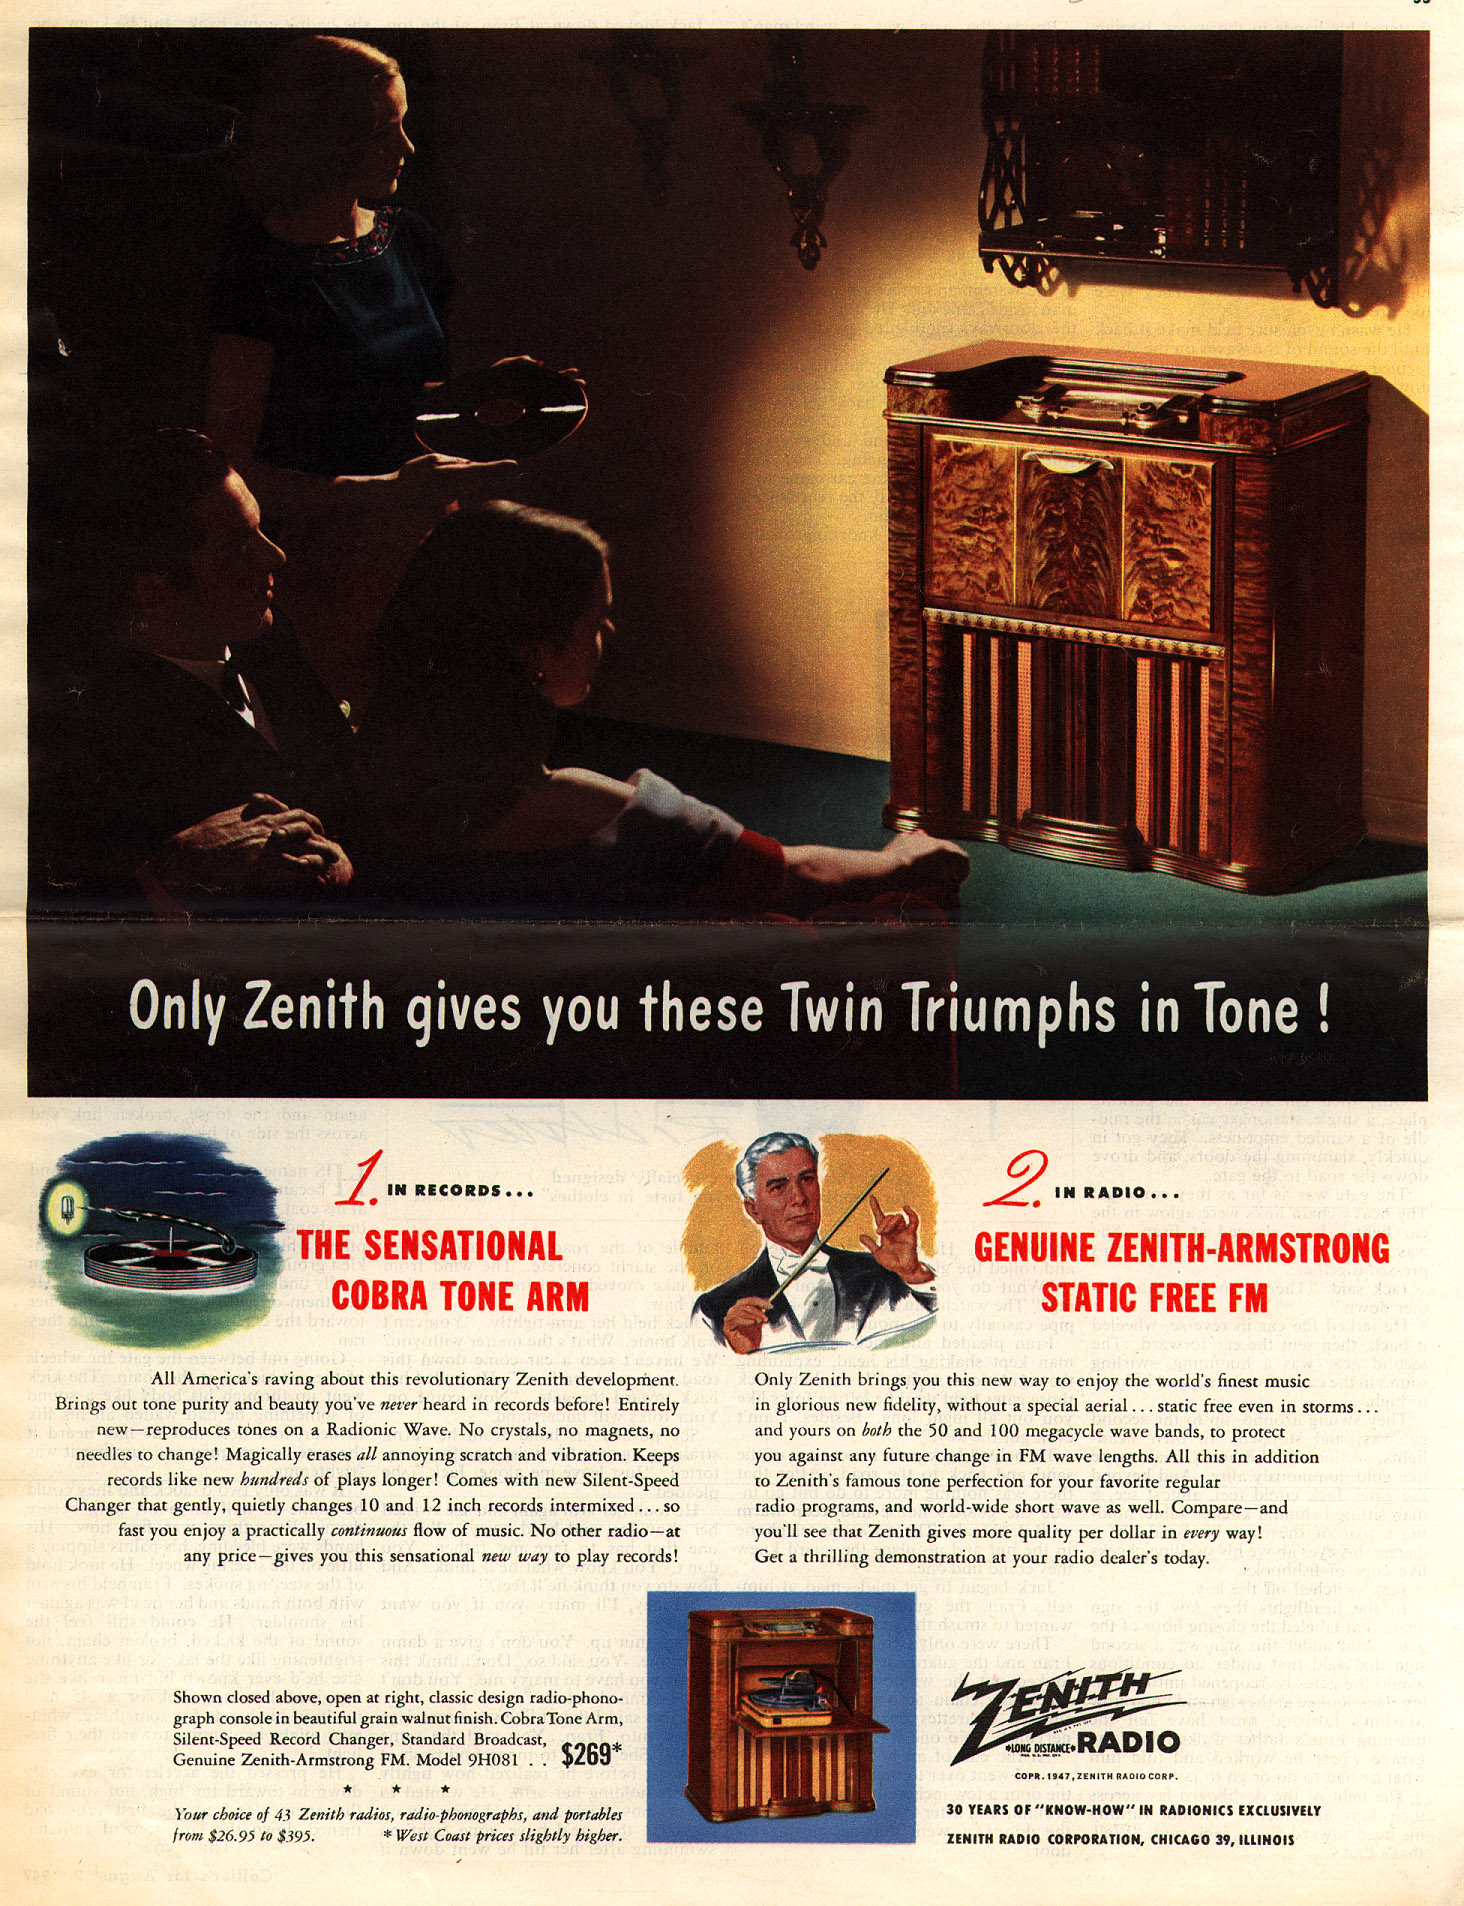 Only_Zenith_gives_you_these_Twin_Triumphs_in_Tone